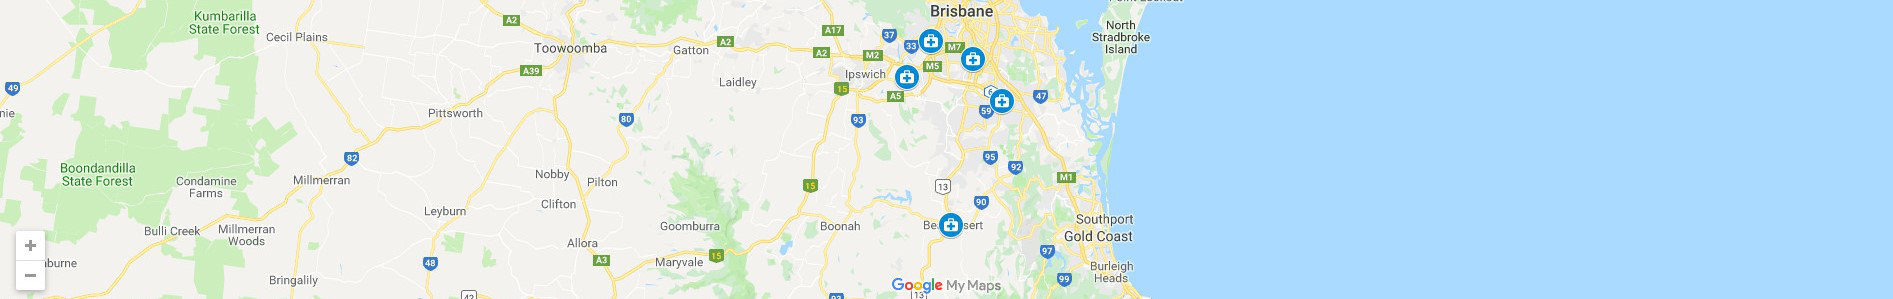 Brisbane Denture Clinic - Denture Clinic Brisbane Location Map